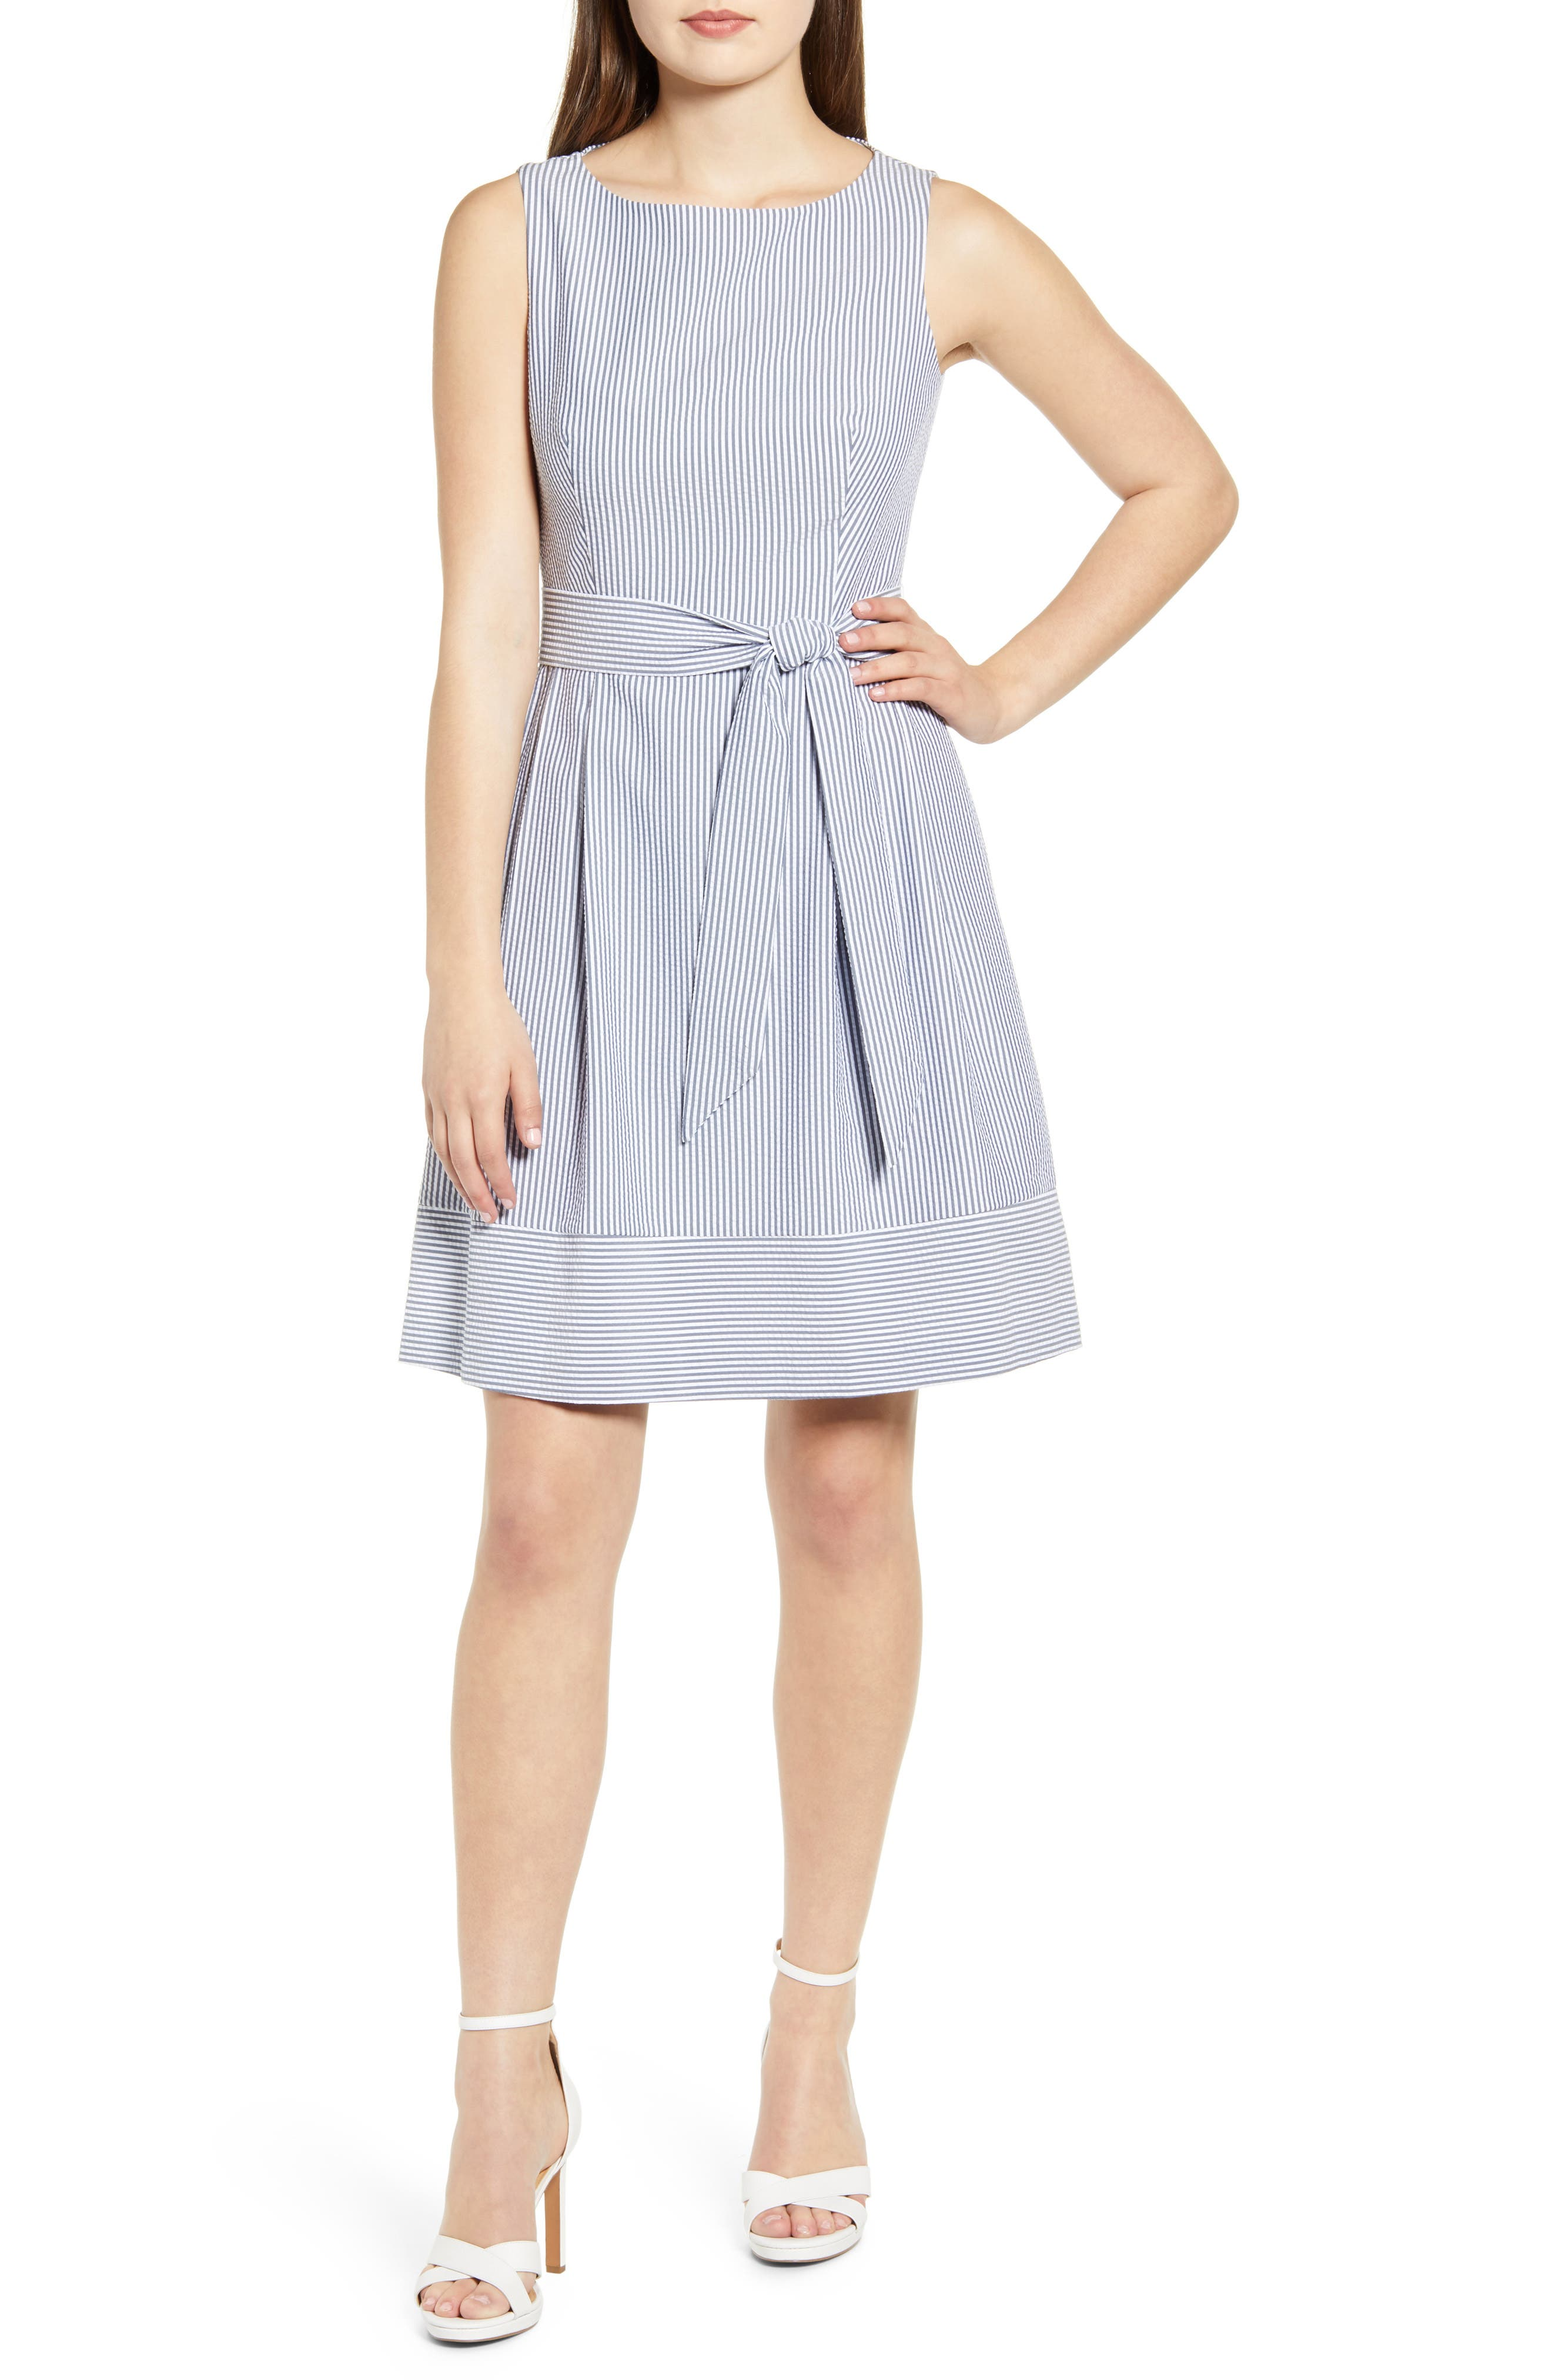 Anne Klein Seersucker Sleeveless Fit & Flare Dress, Grey